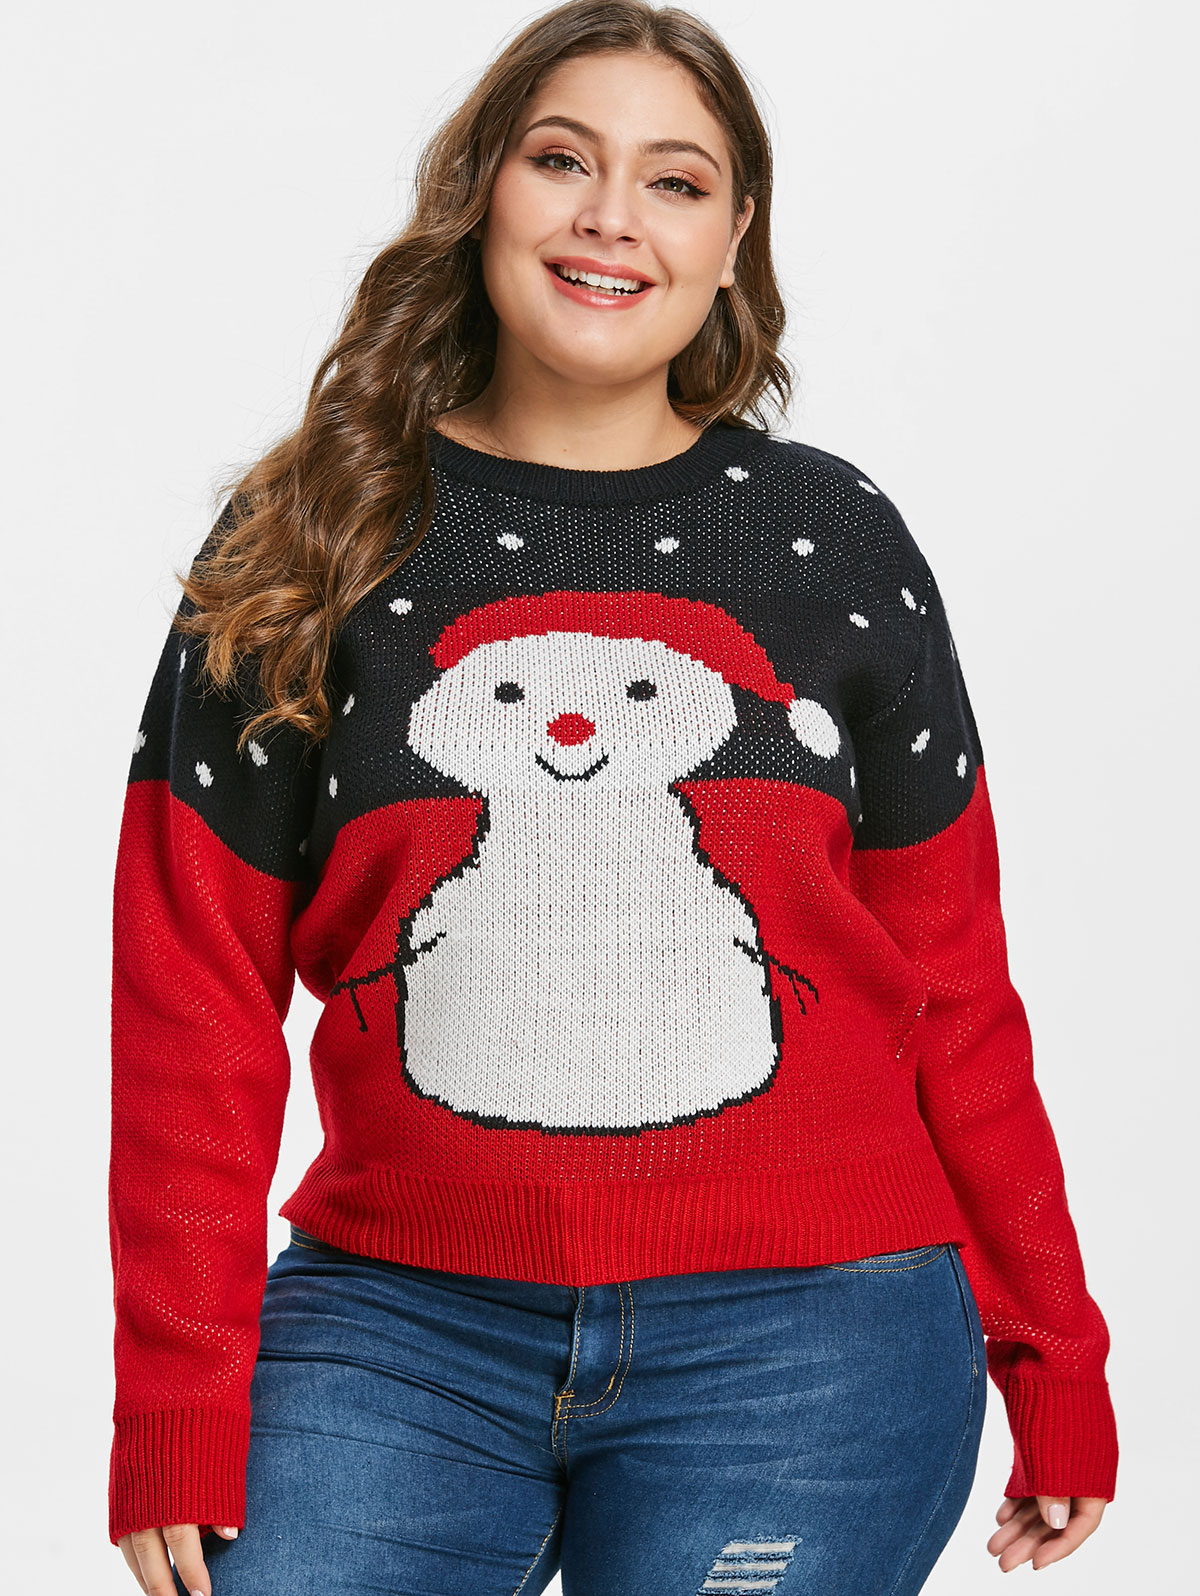 Plus Size Ugly Christmas Sweater.Us 14 81 48 Off Wipalo Women Plus Size Cartoon Snowman Print Ugly Christmas Sweater Drop Shoulder Loose Fit Casual Fall Winter Pullover Sweater In